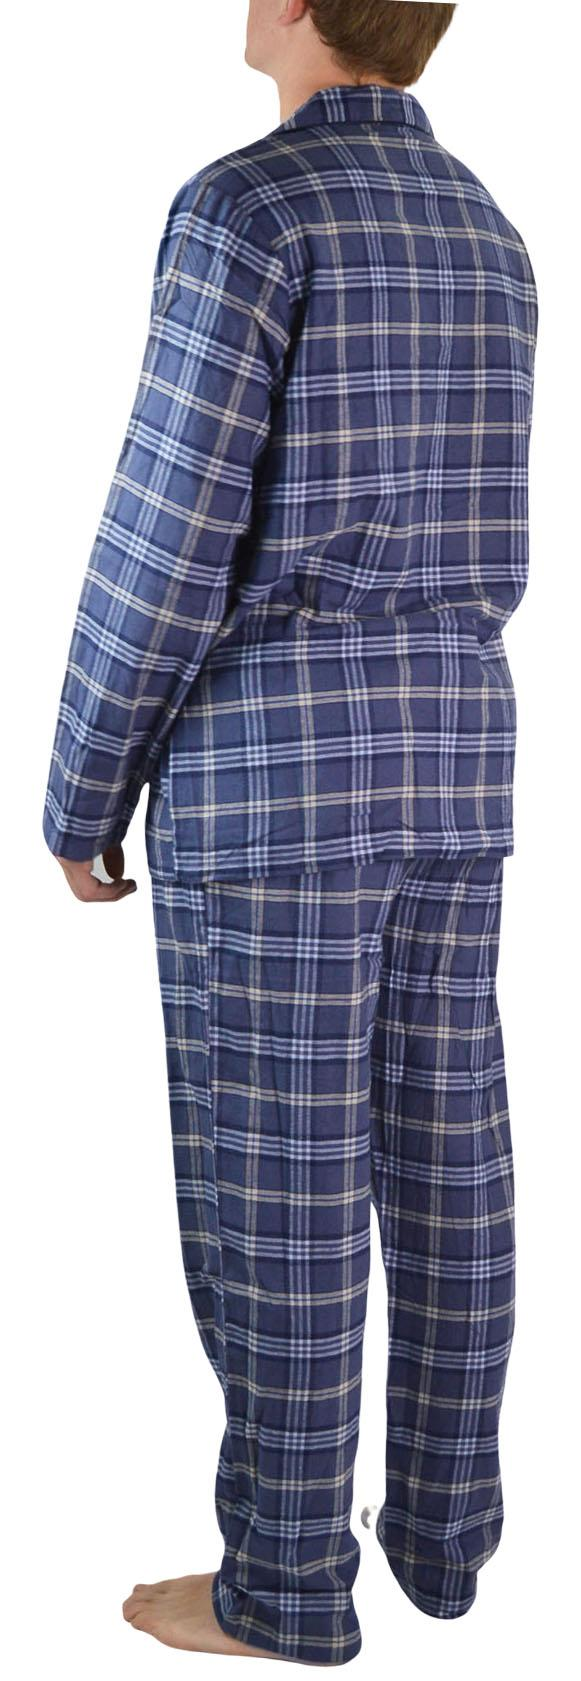 NEW-Mens-Brushed-Pure-Cotton-Check-Pyjamas-Flannelette-PJ-Set-in-Blue-Red-Grey thumbnail 5